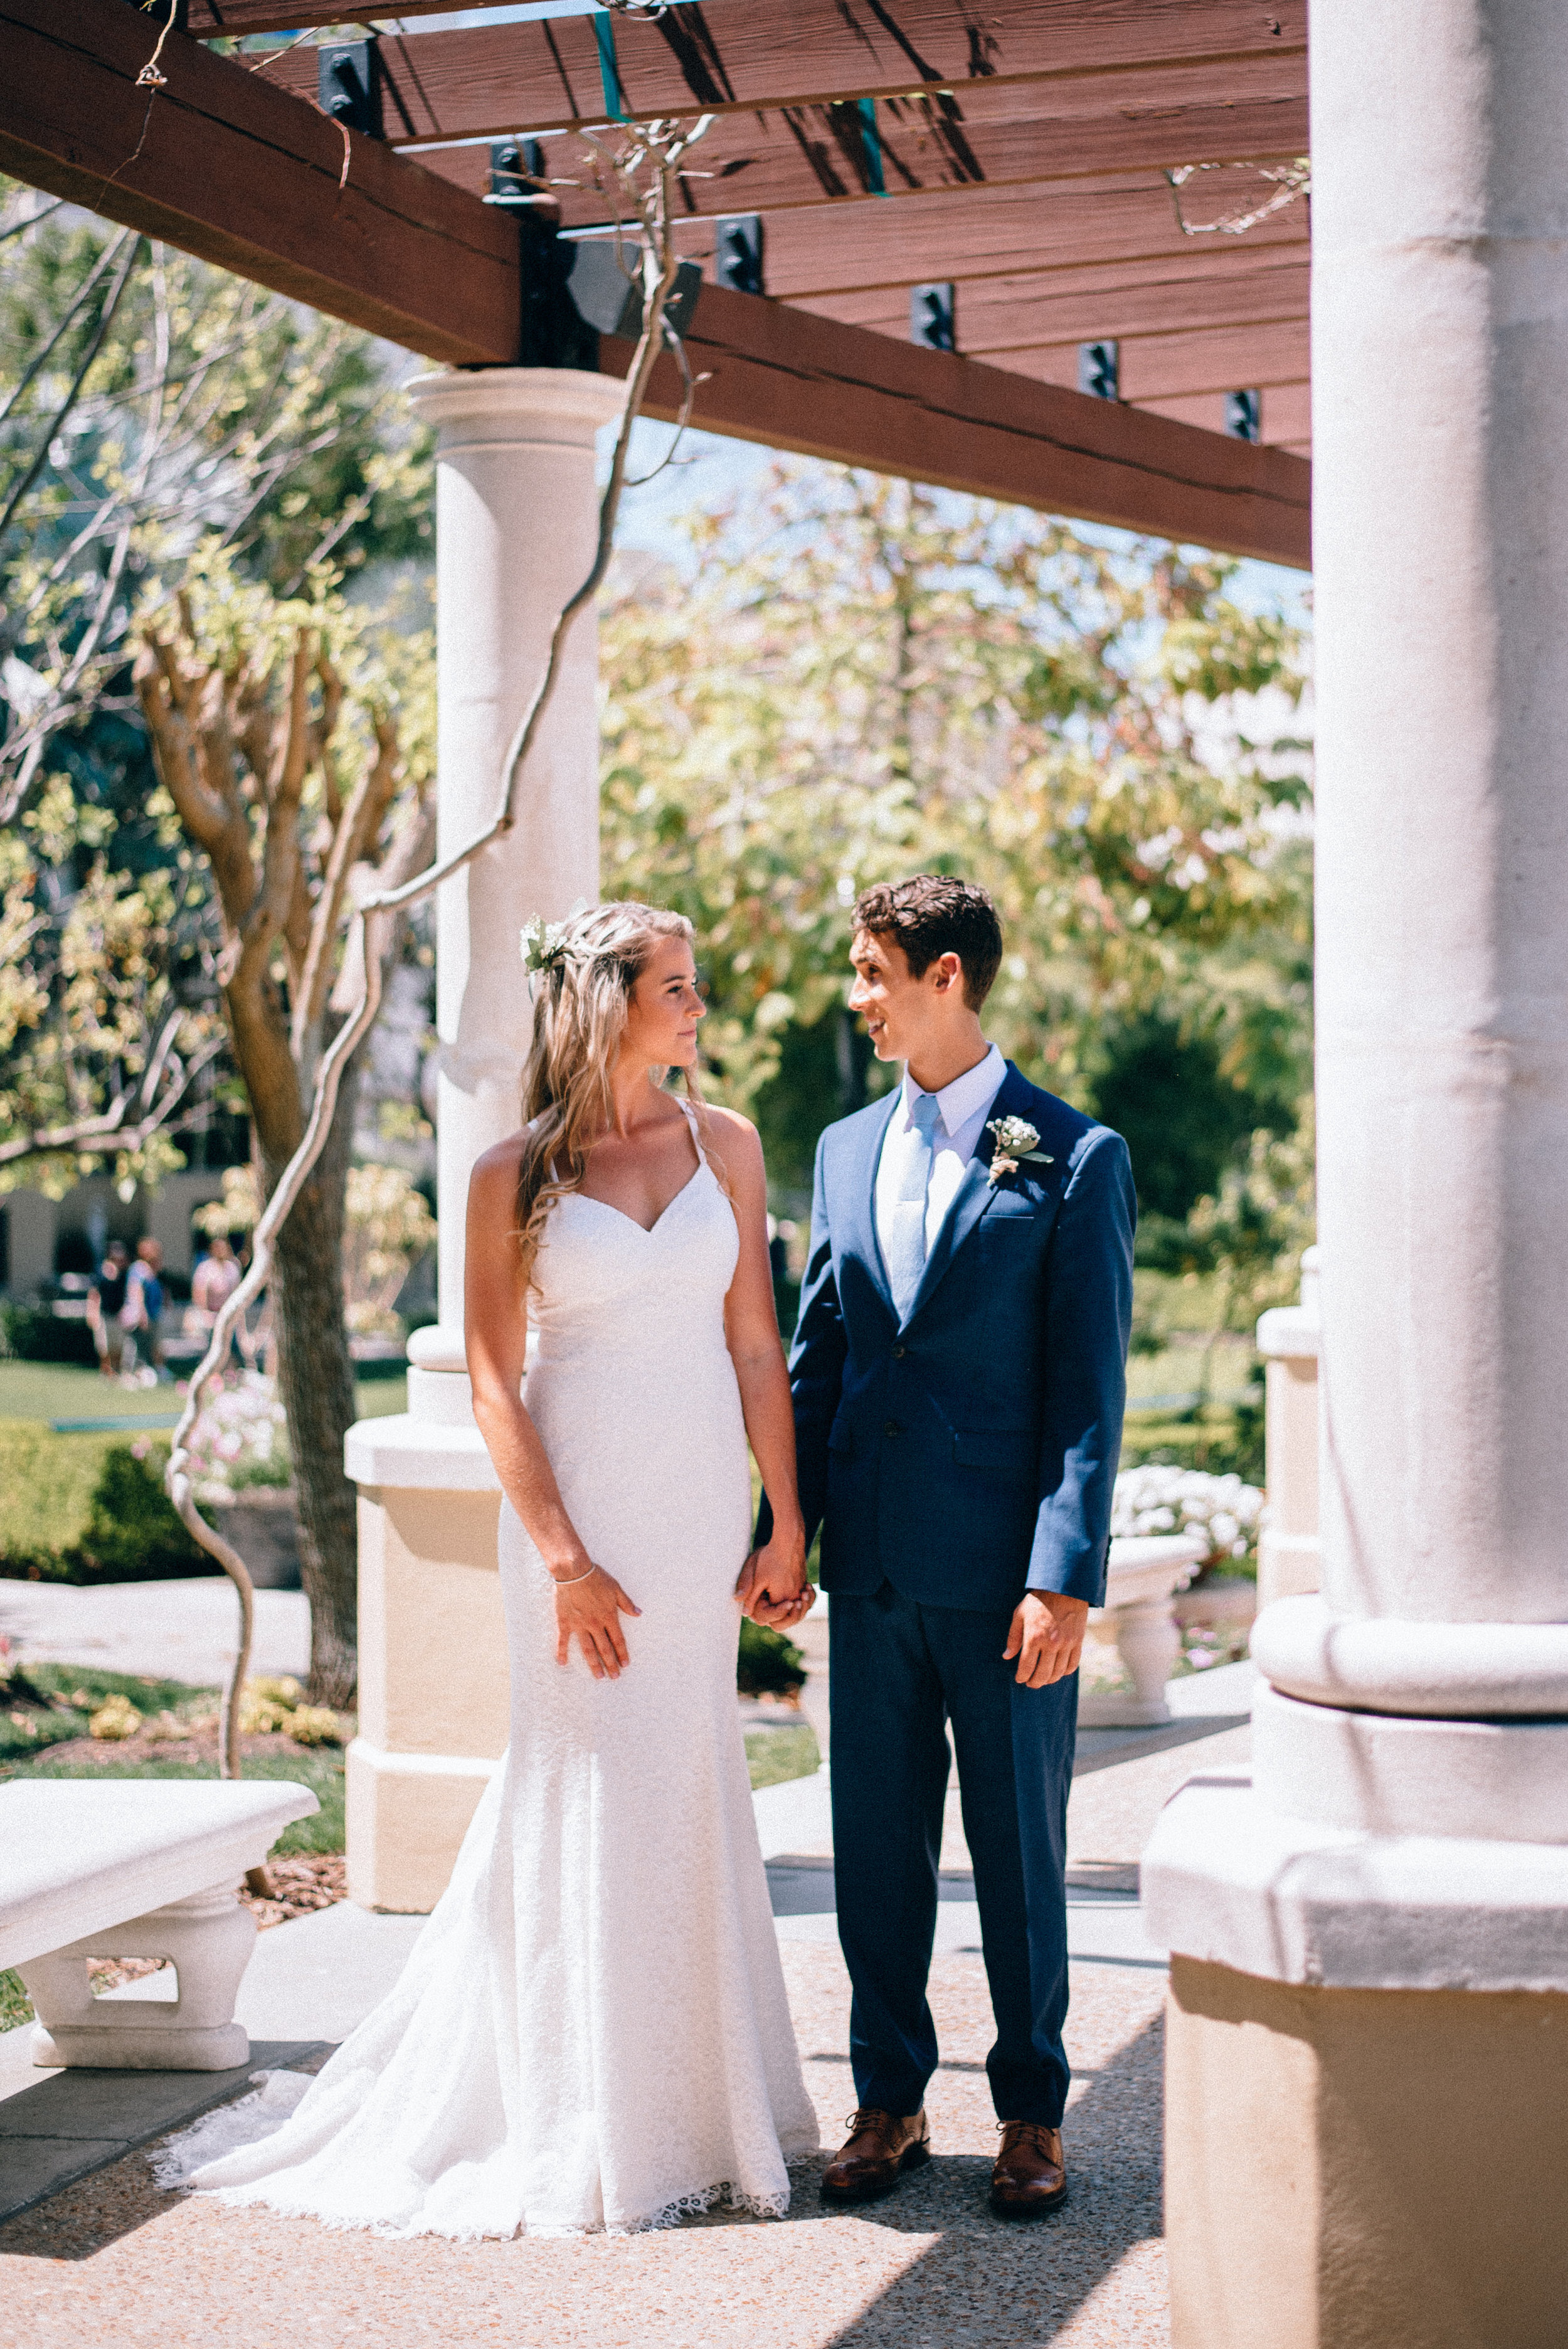 KIRSTEN'S SWEET AND SIMPLE FLORIDA WEDDING